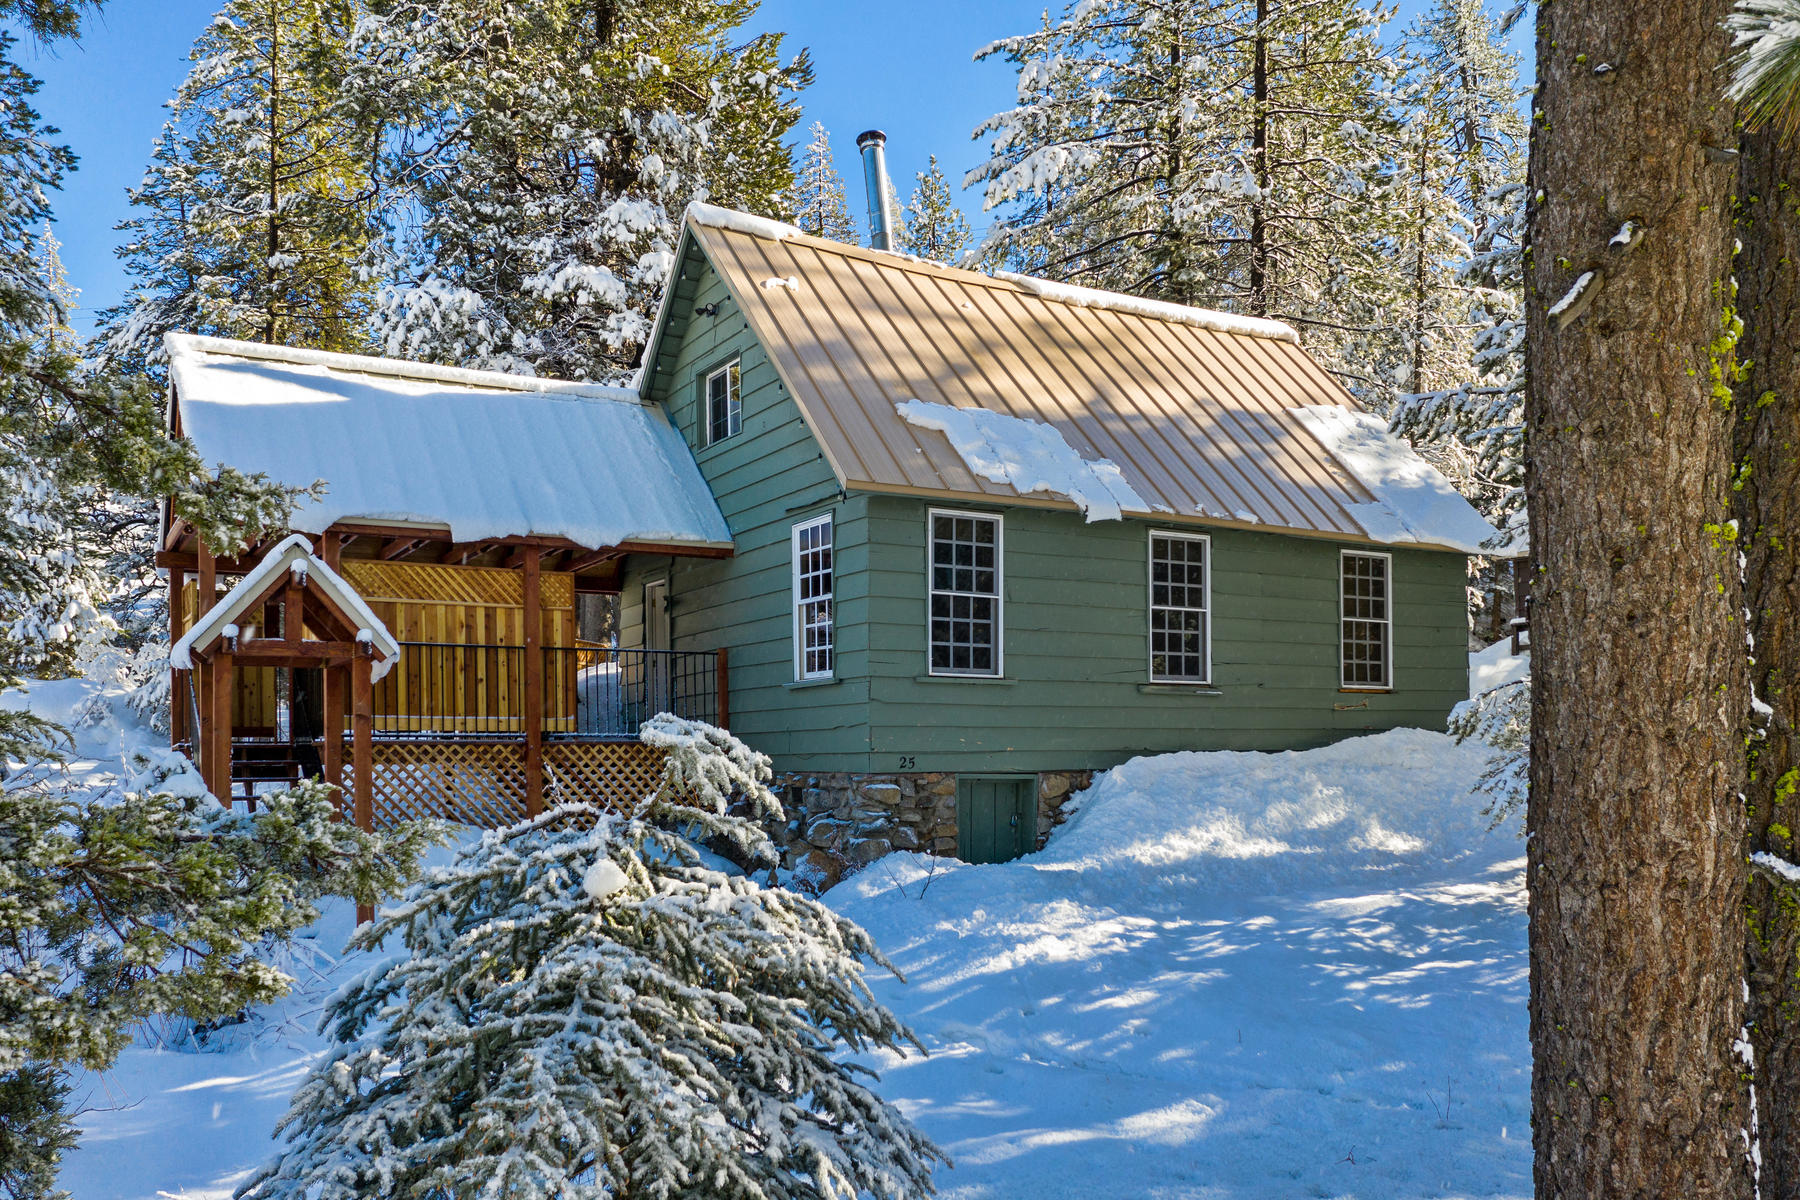 Single Family Home for Active at 25 S Yuba Drive, Soda Springs, CA 25 S Yuba Drive Soda Springs, California 95715 United States